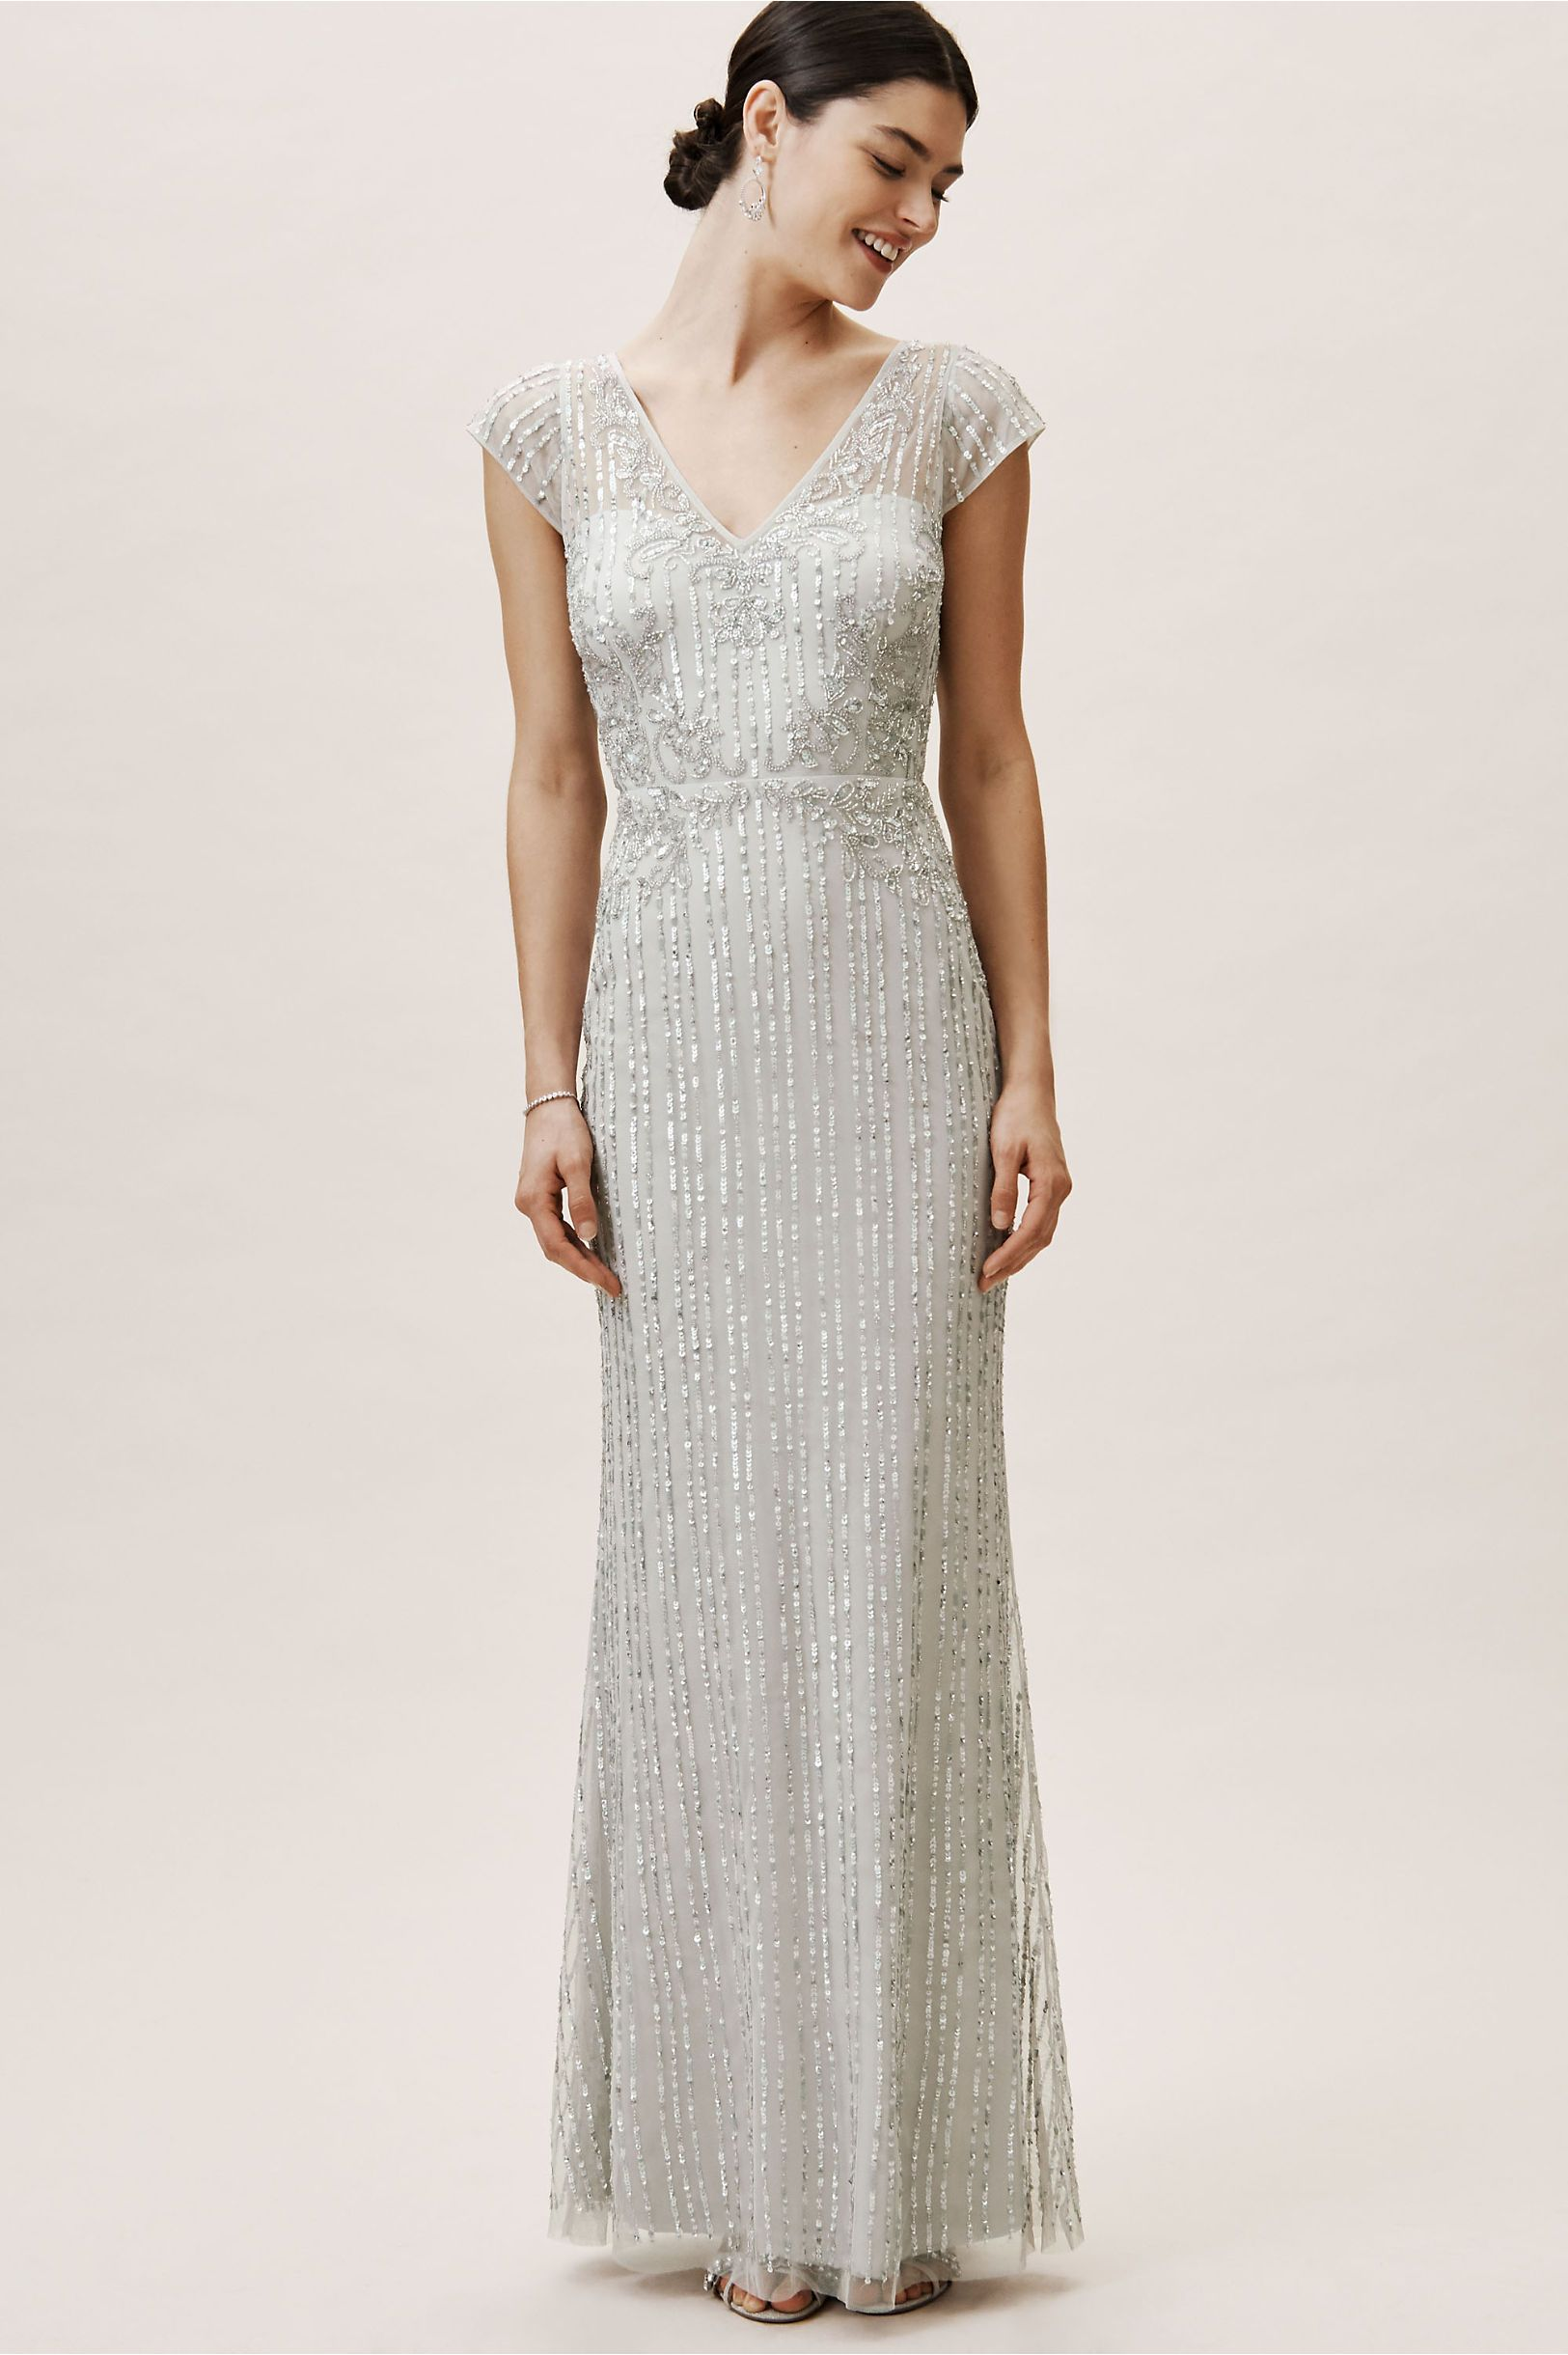 Calais Dress Morning Mist In Bridesmaids Bridal Party Bhldn